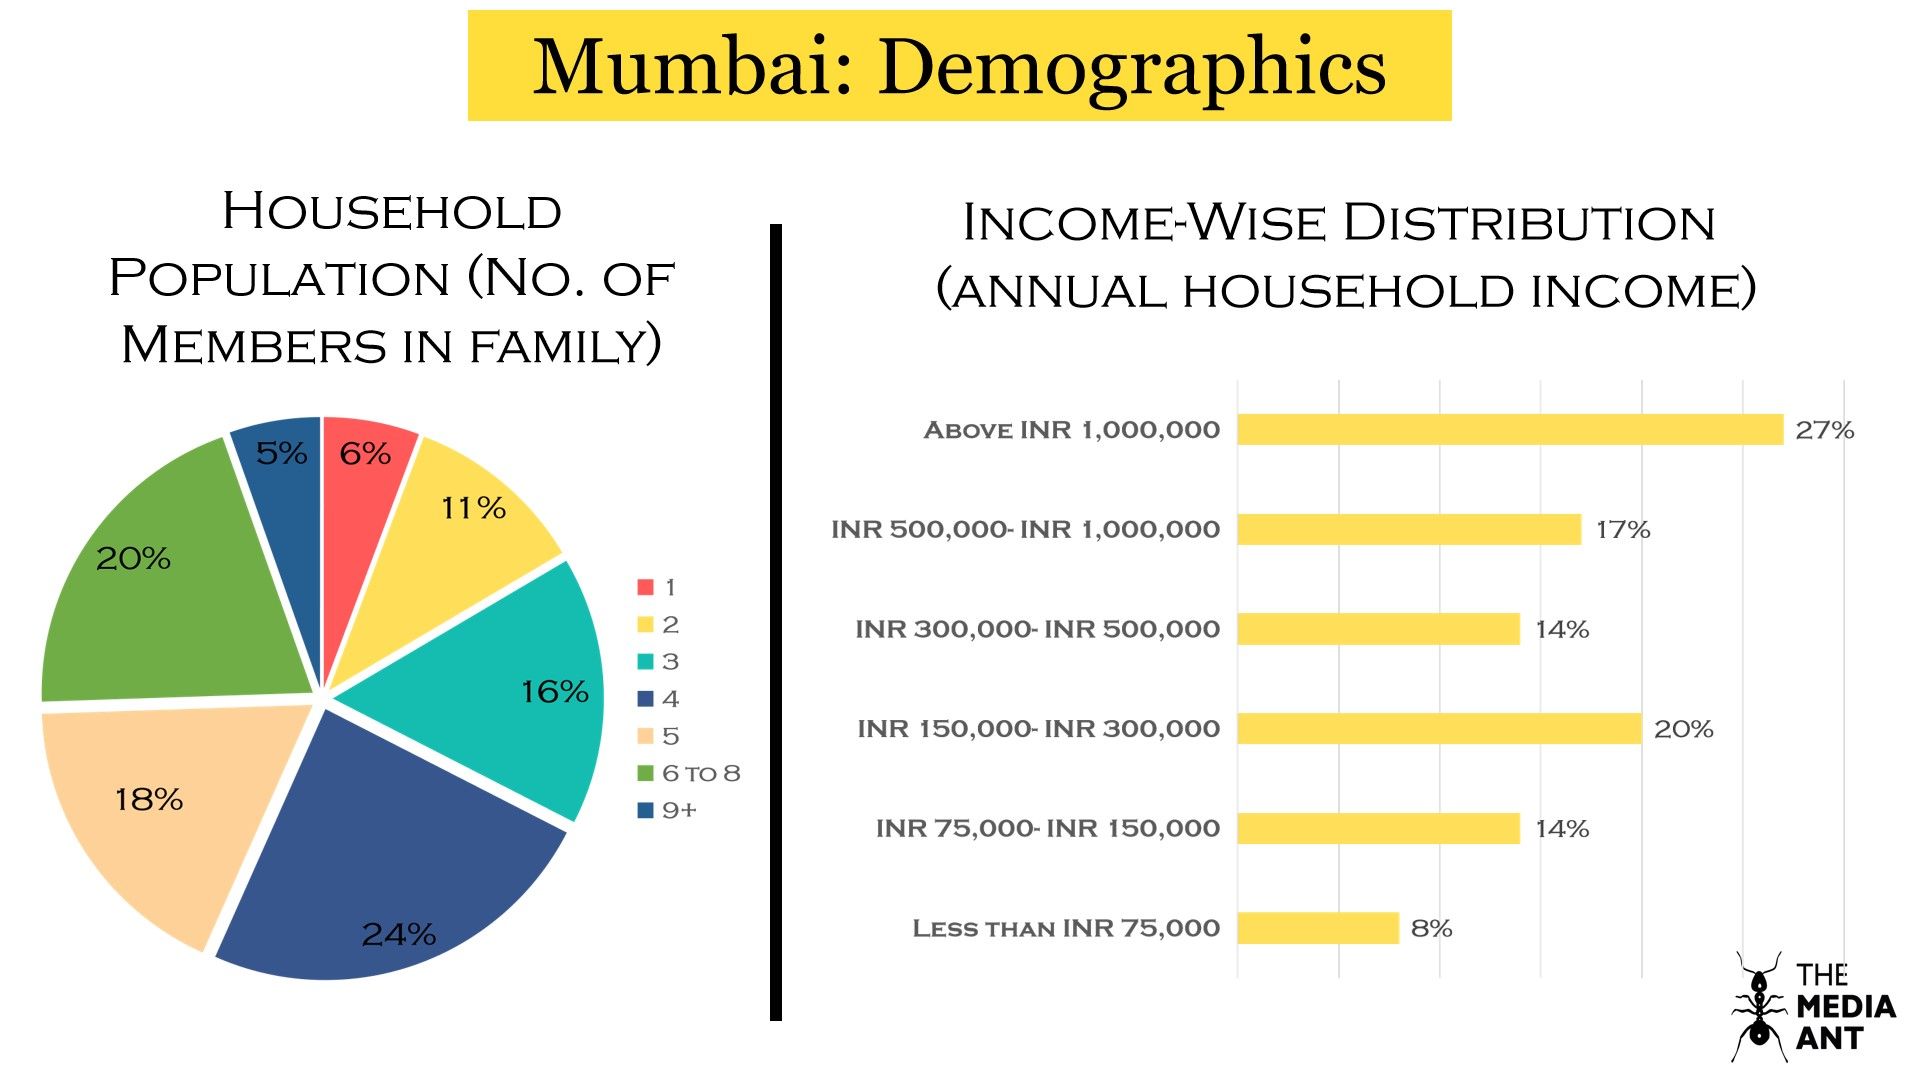 Mumbai household data and income wise household distribution